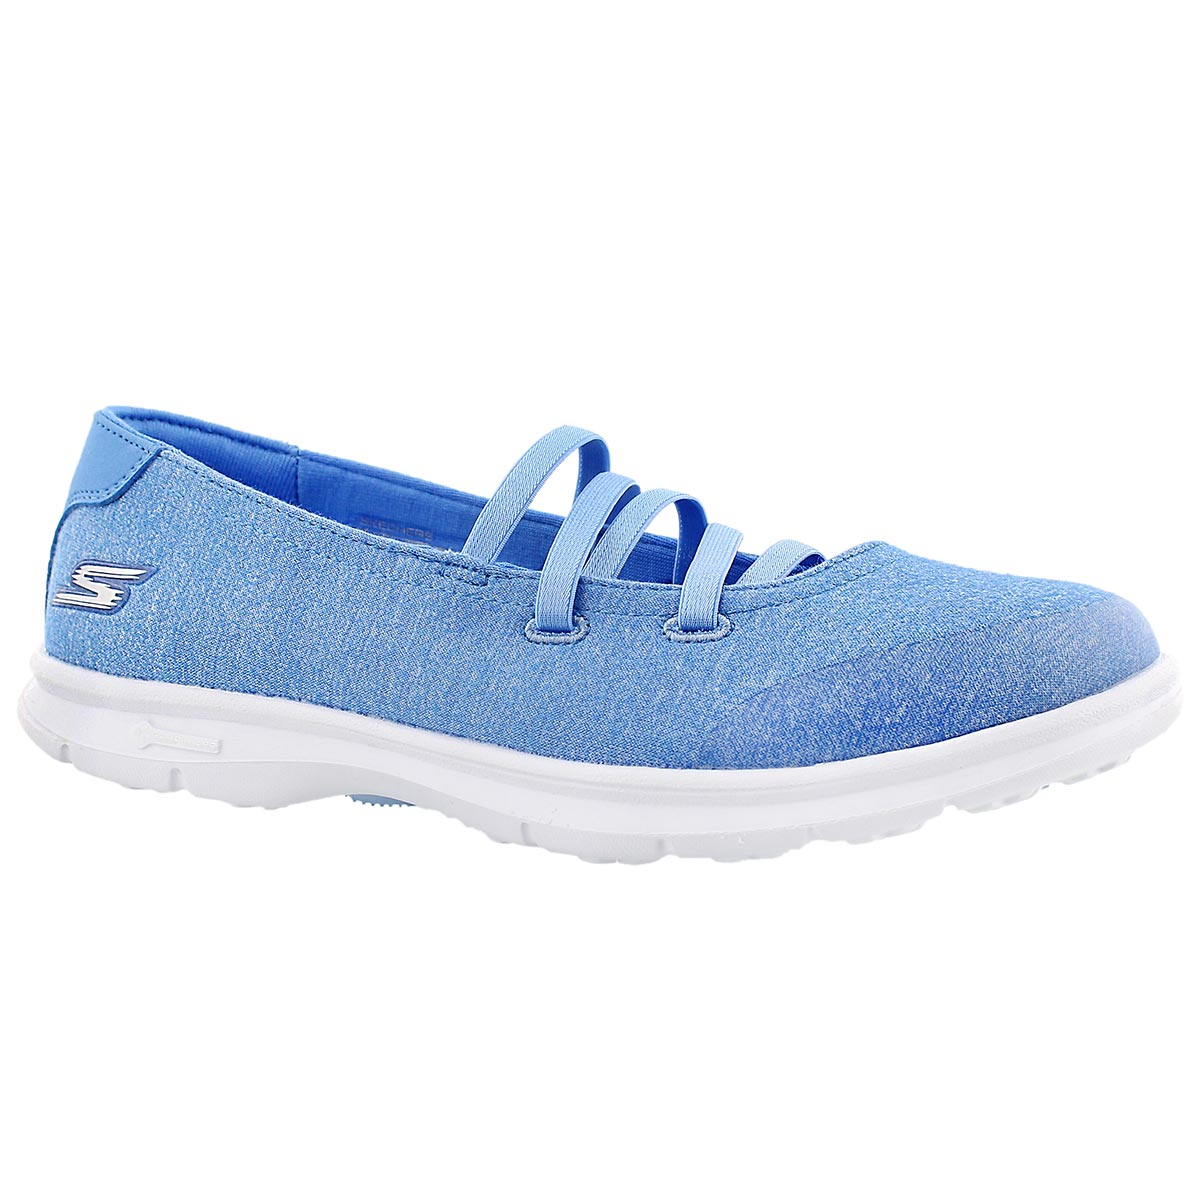 Women's POSE blue Mary Jane flats